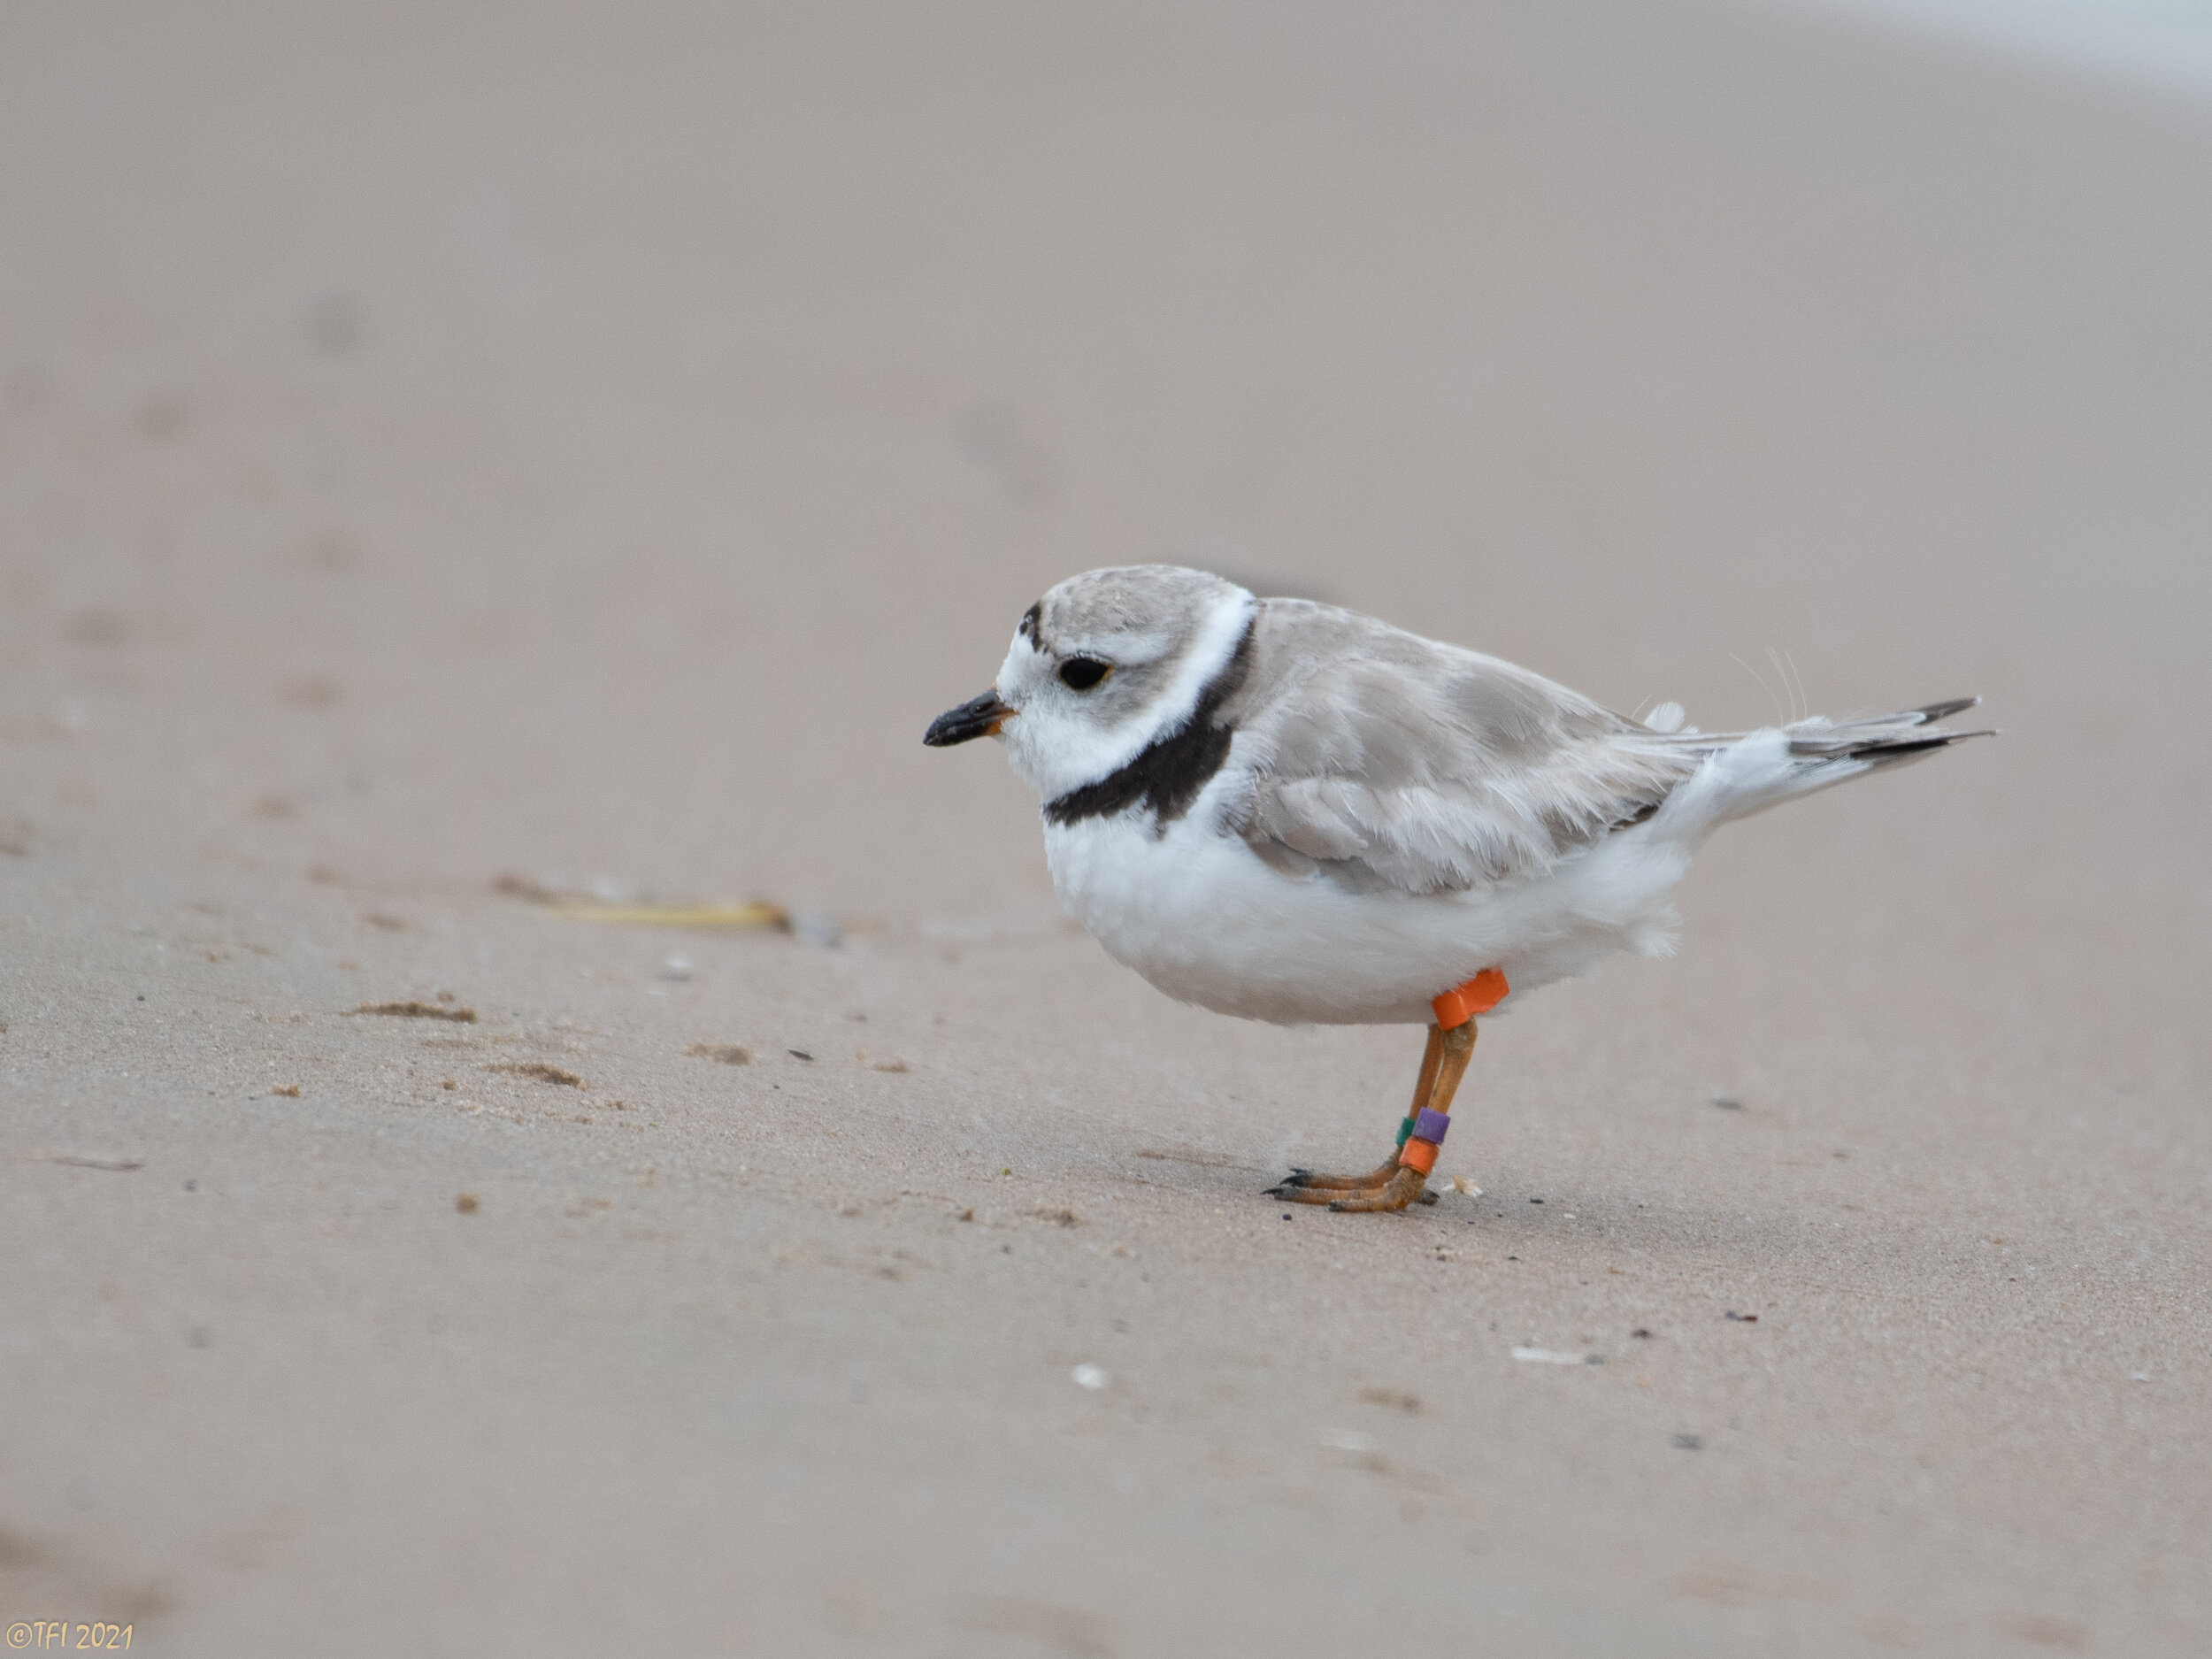 Monty the piping plover seen Aug. 13 on Montrose Beach before his long flight to Galveston, Texas.